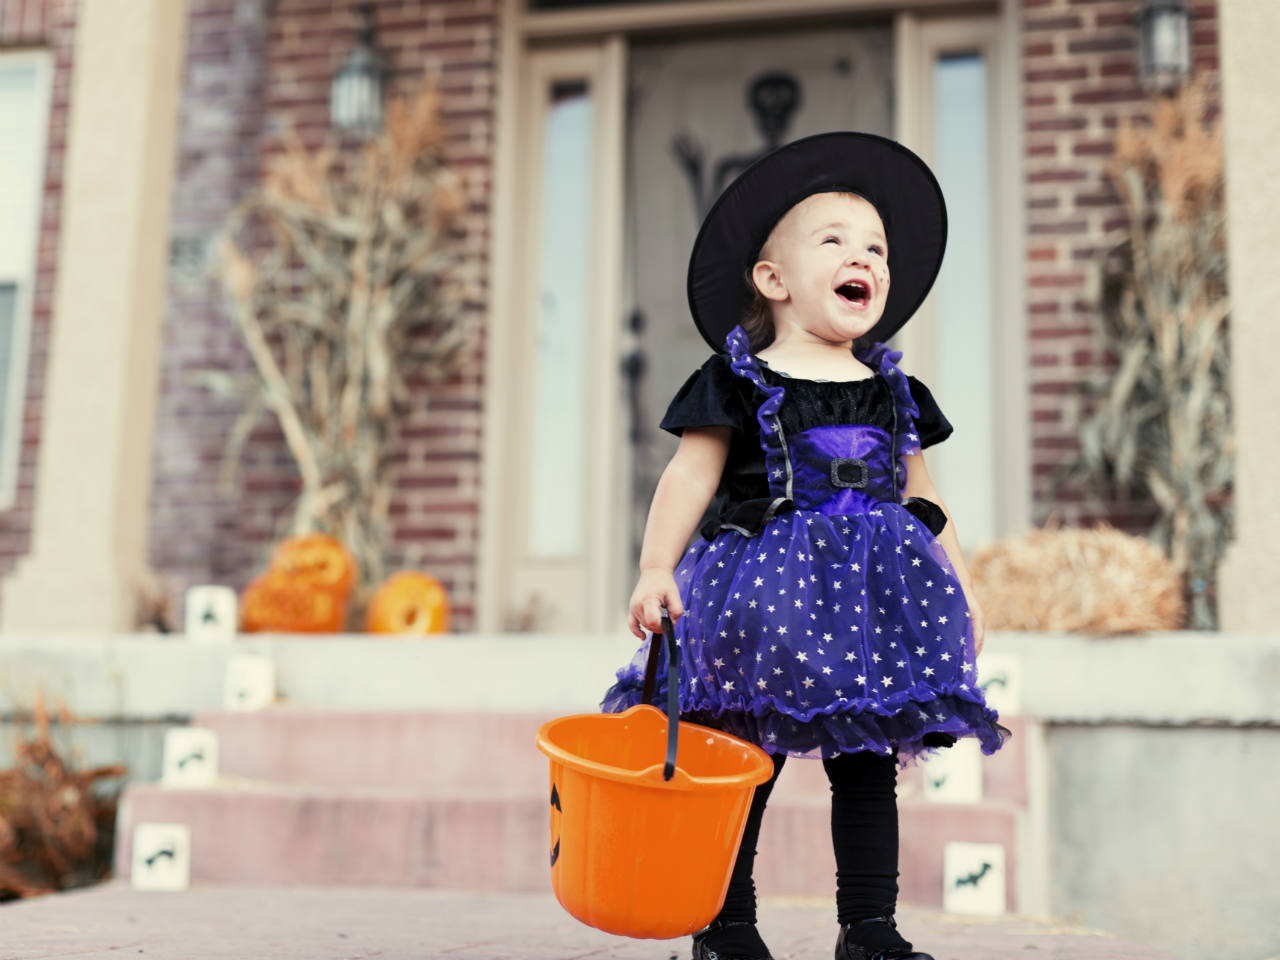 A little girl dressed as a witch standing on a doorstep on Halloween